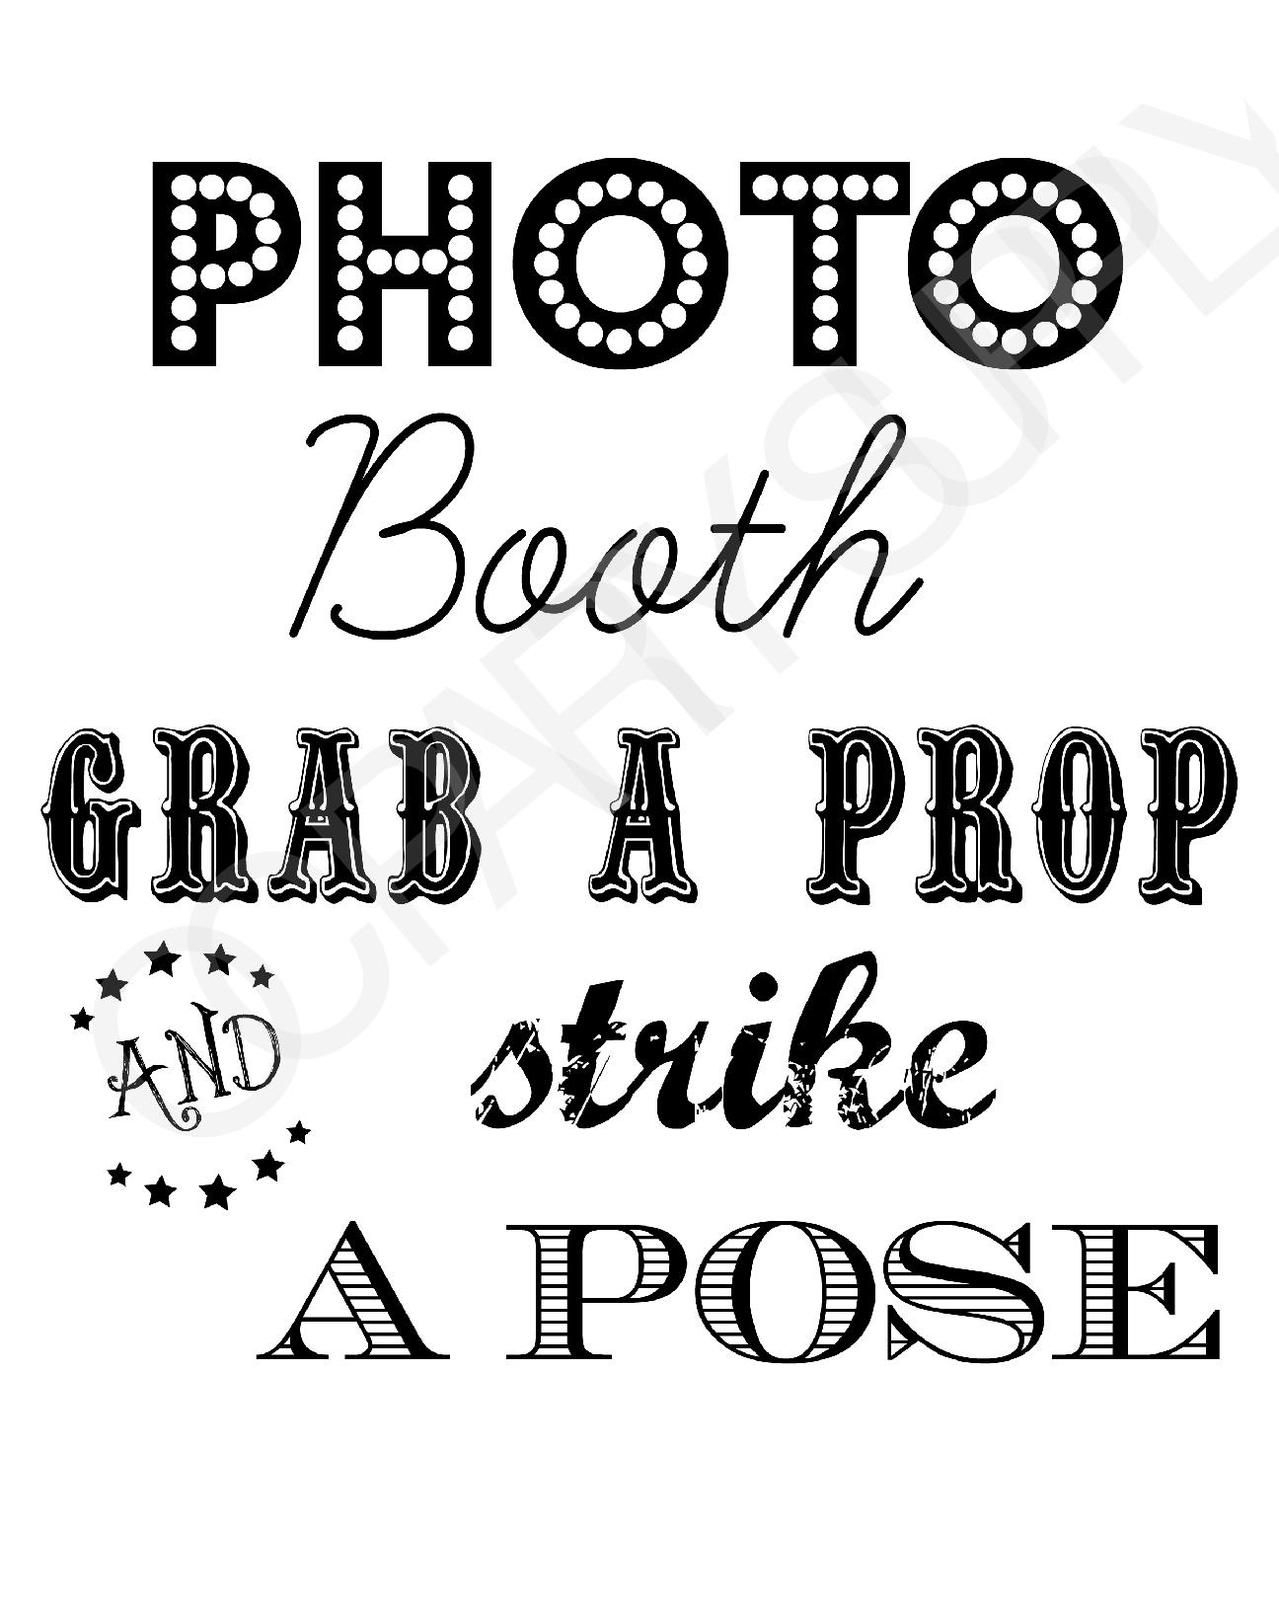 Free Photo Booth Sign (Printable) | Mr & Mrs | Fiesta En La Playa - Free Printable Photo Booth Sign